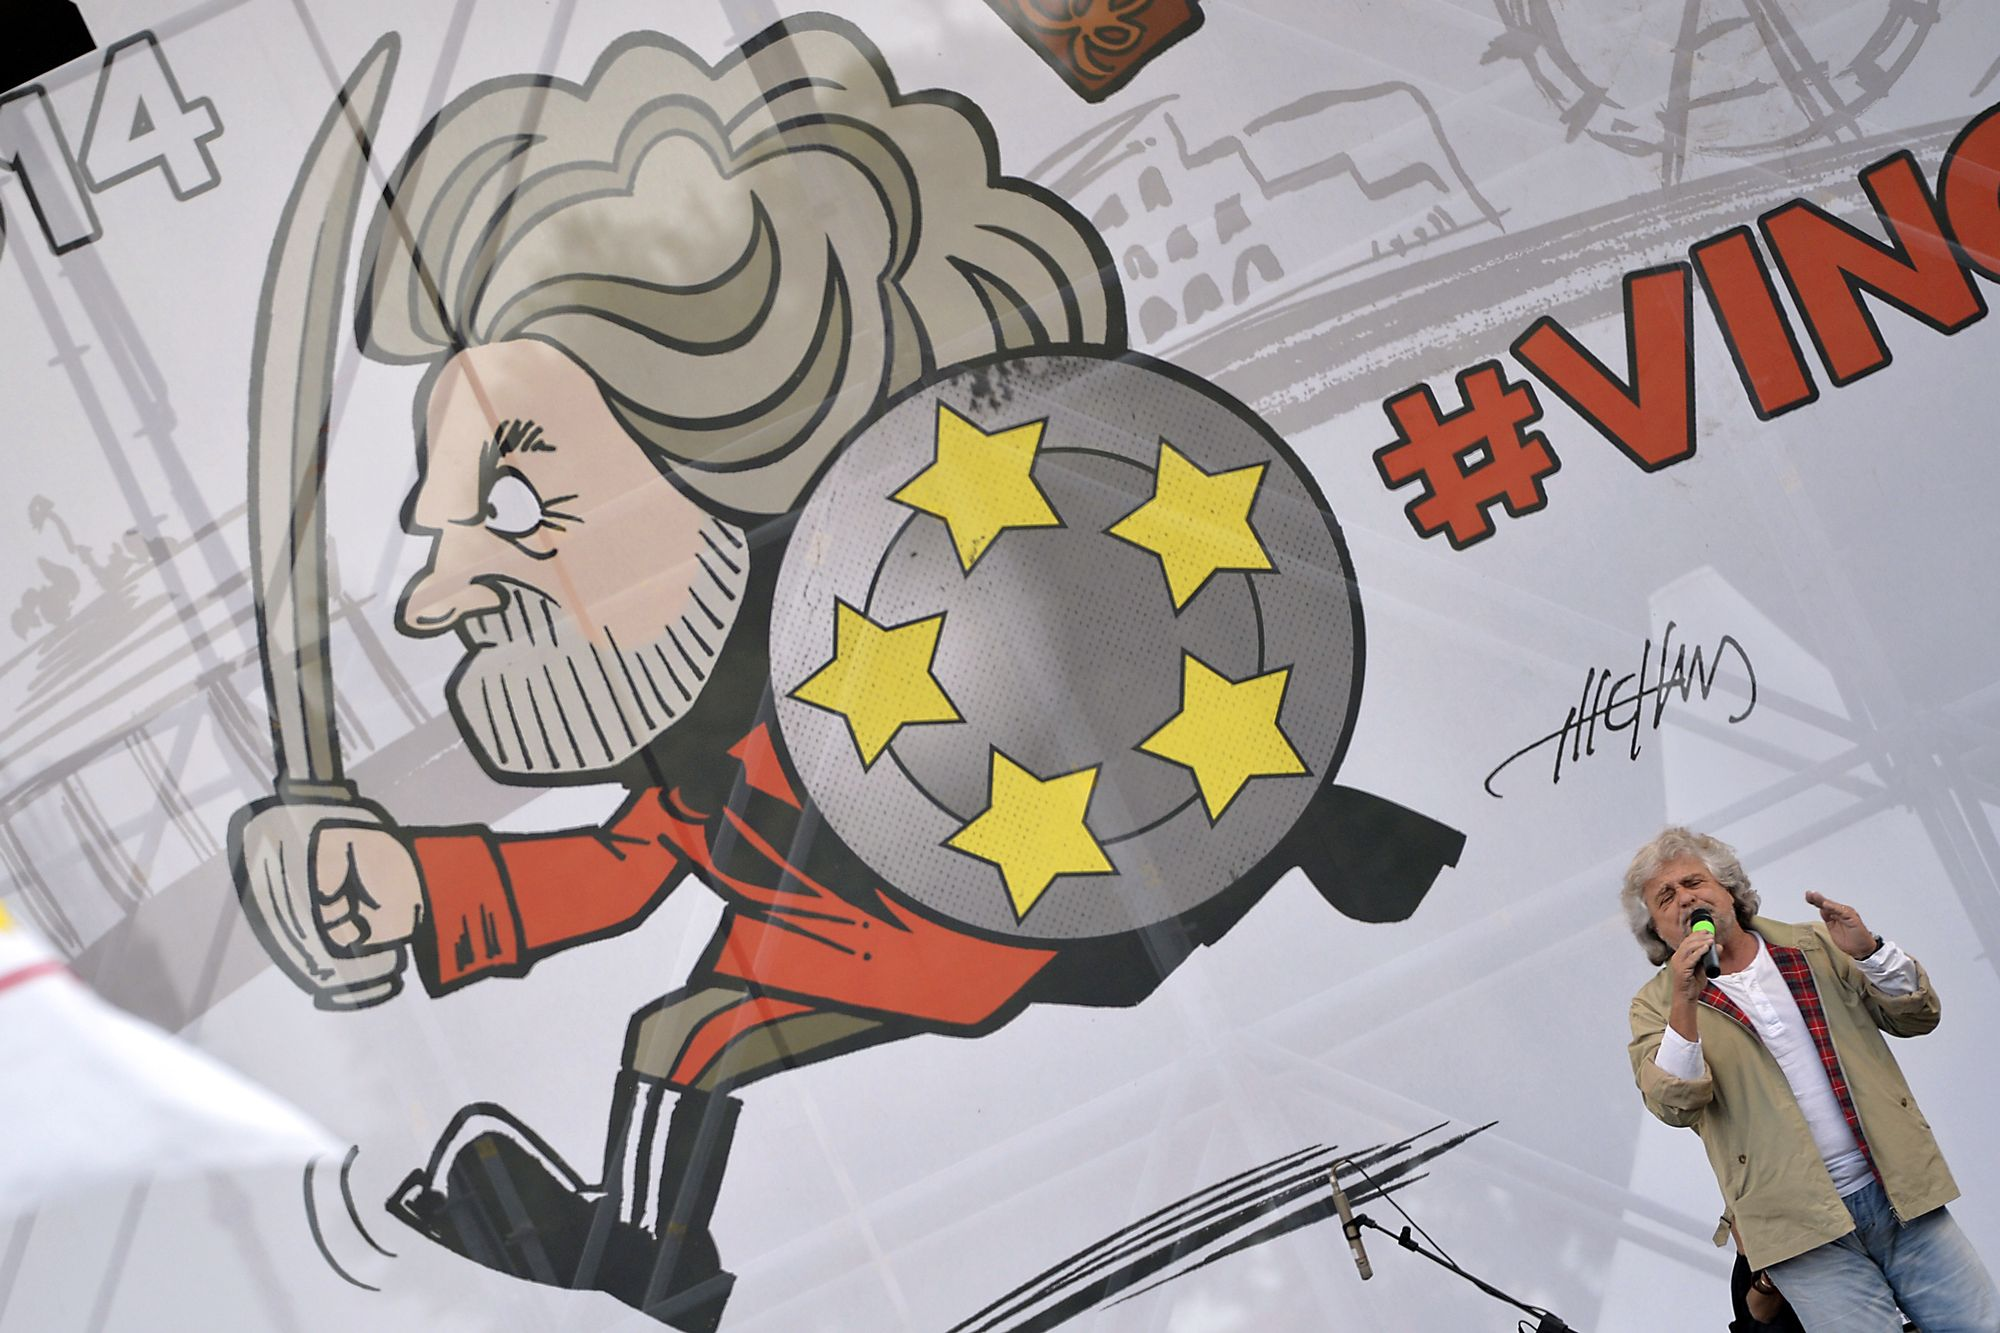 Le leader du M5S Beppe Grillo durant un meeting politique à Rome en 2014.